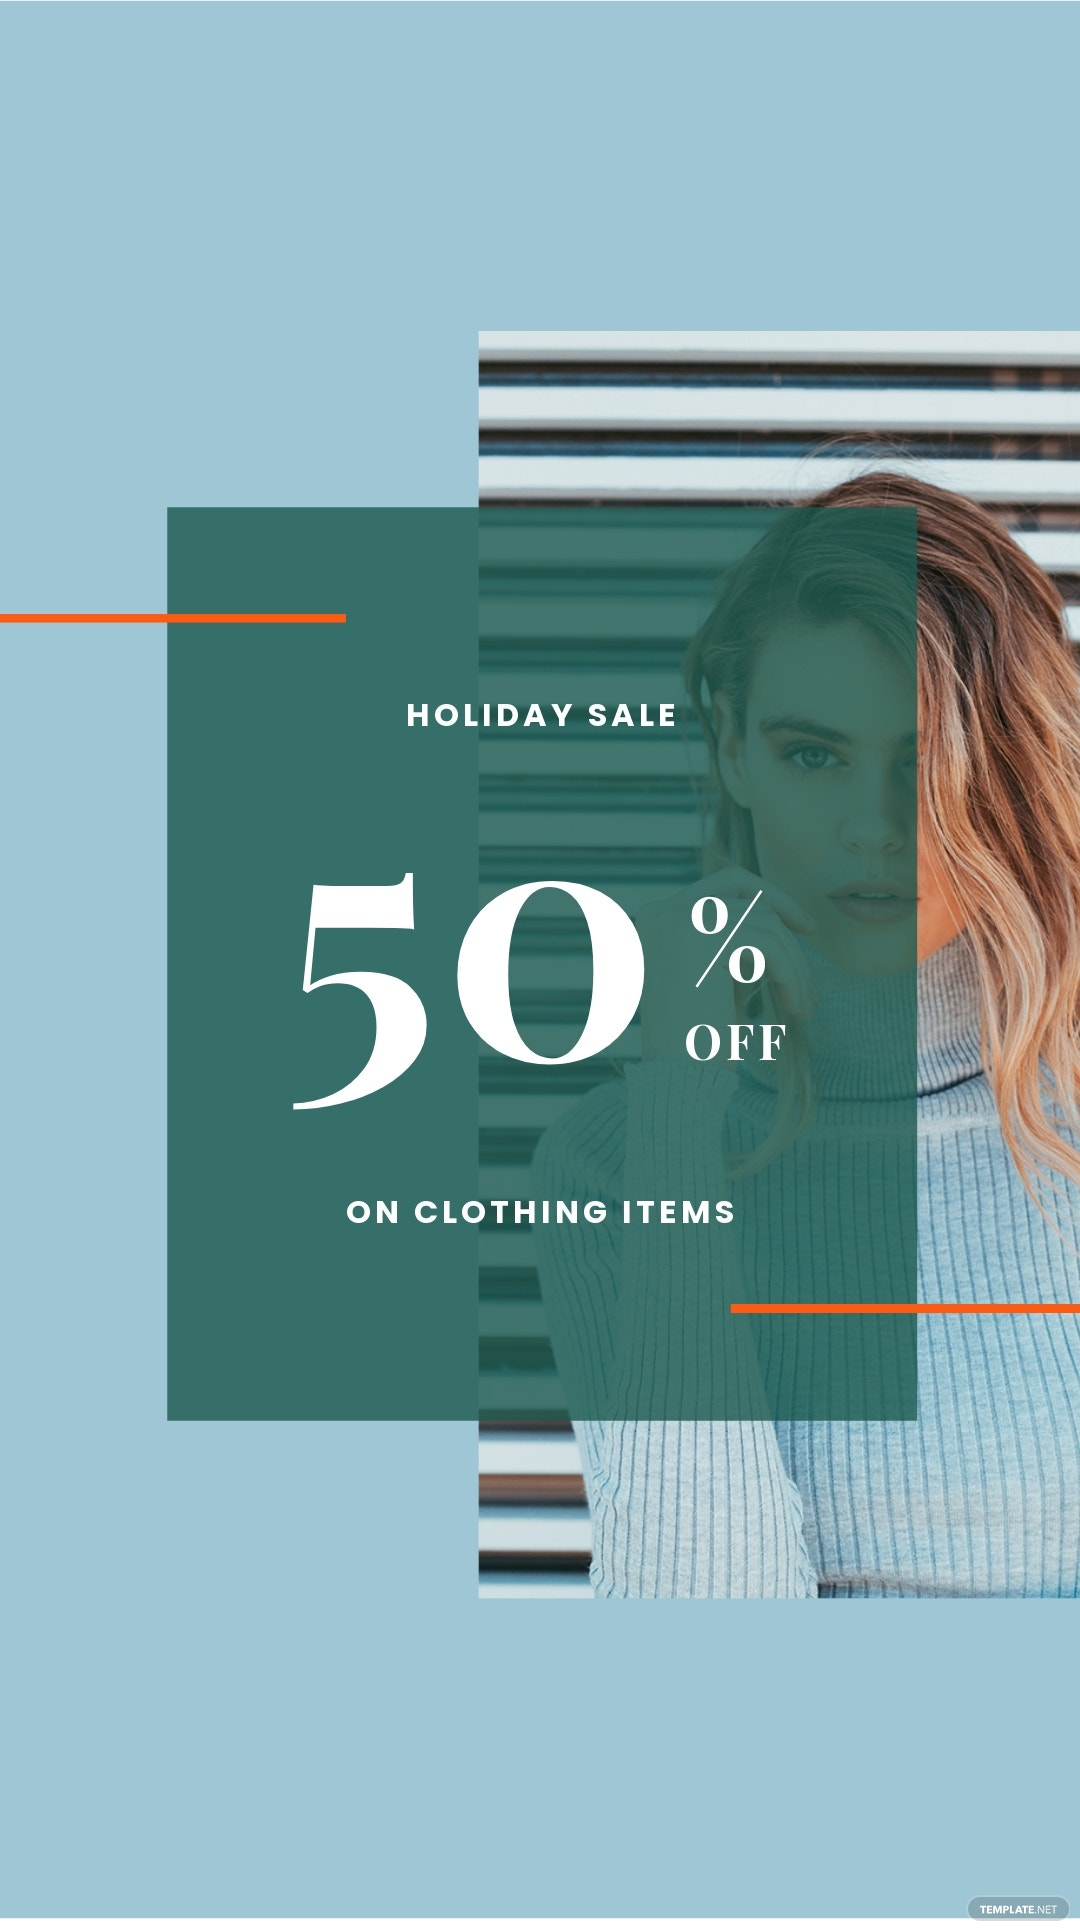 Free Holiday Collection Sale Instagram Story Template